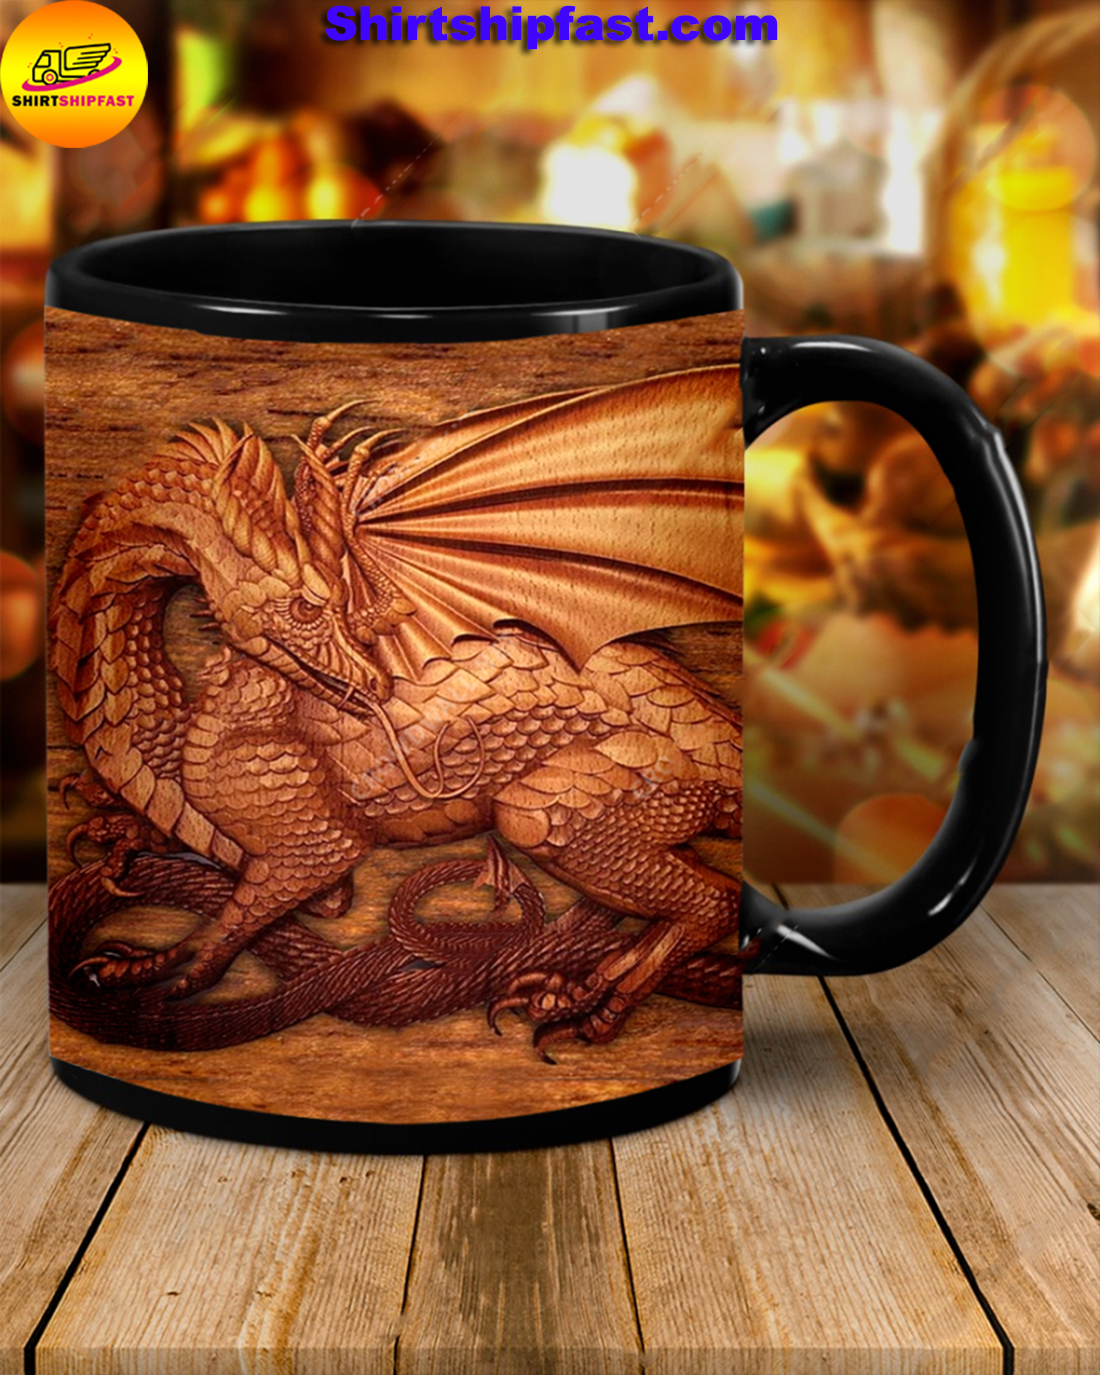 ou don't need the size of a dragon to have a soul of a dragon mug